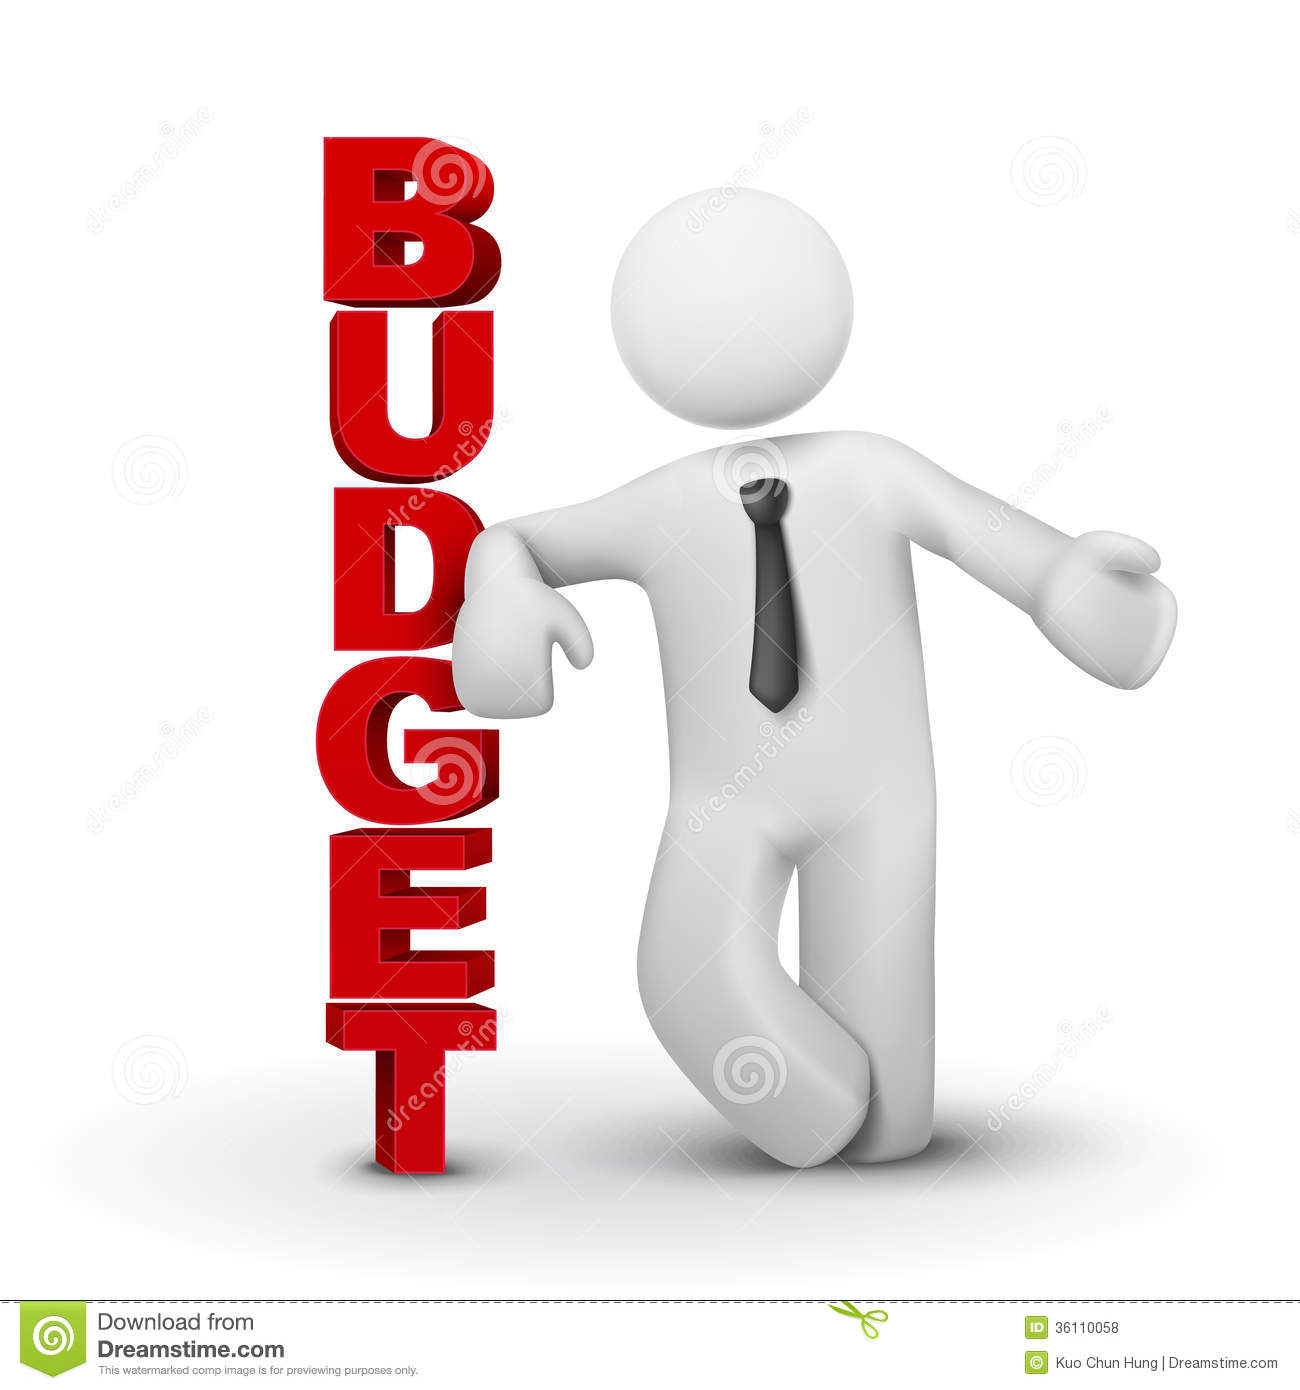 d-business-man-presenting-concept-budget-white-background-36110058.jpg